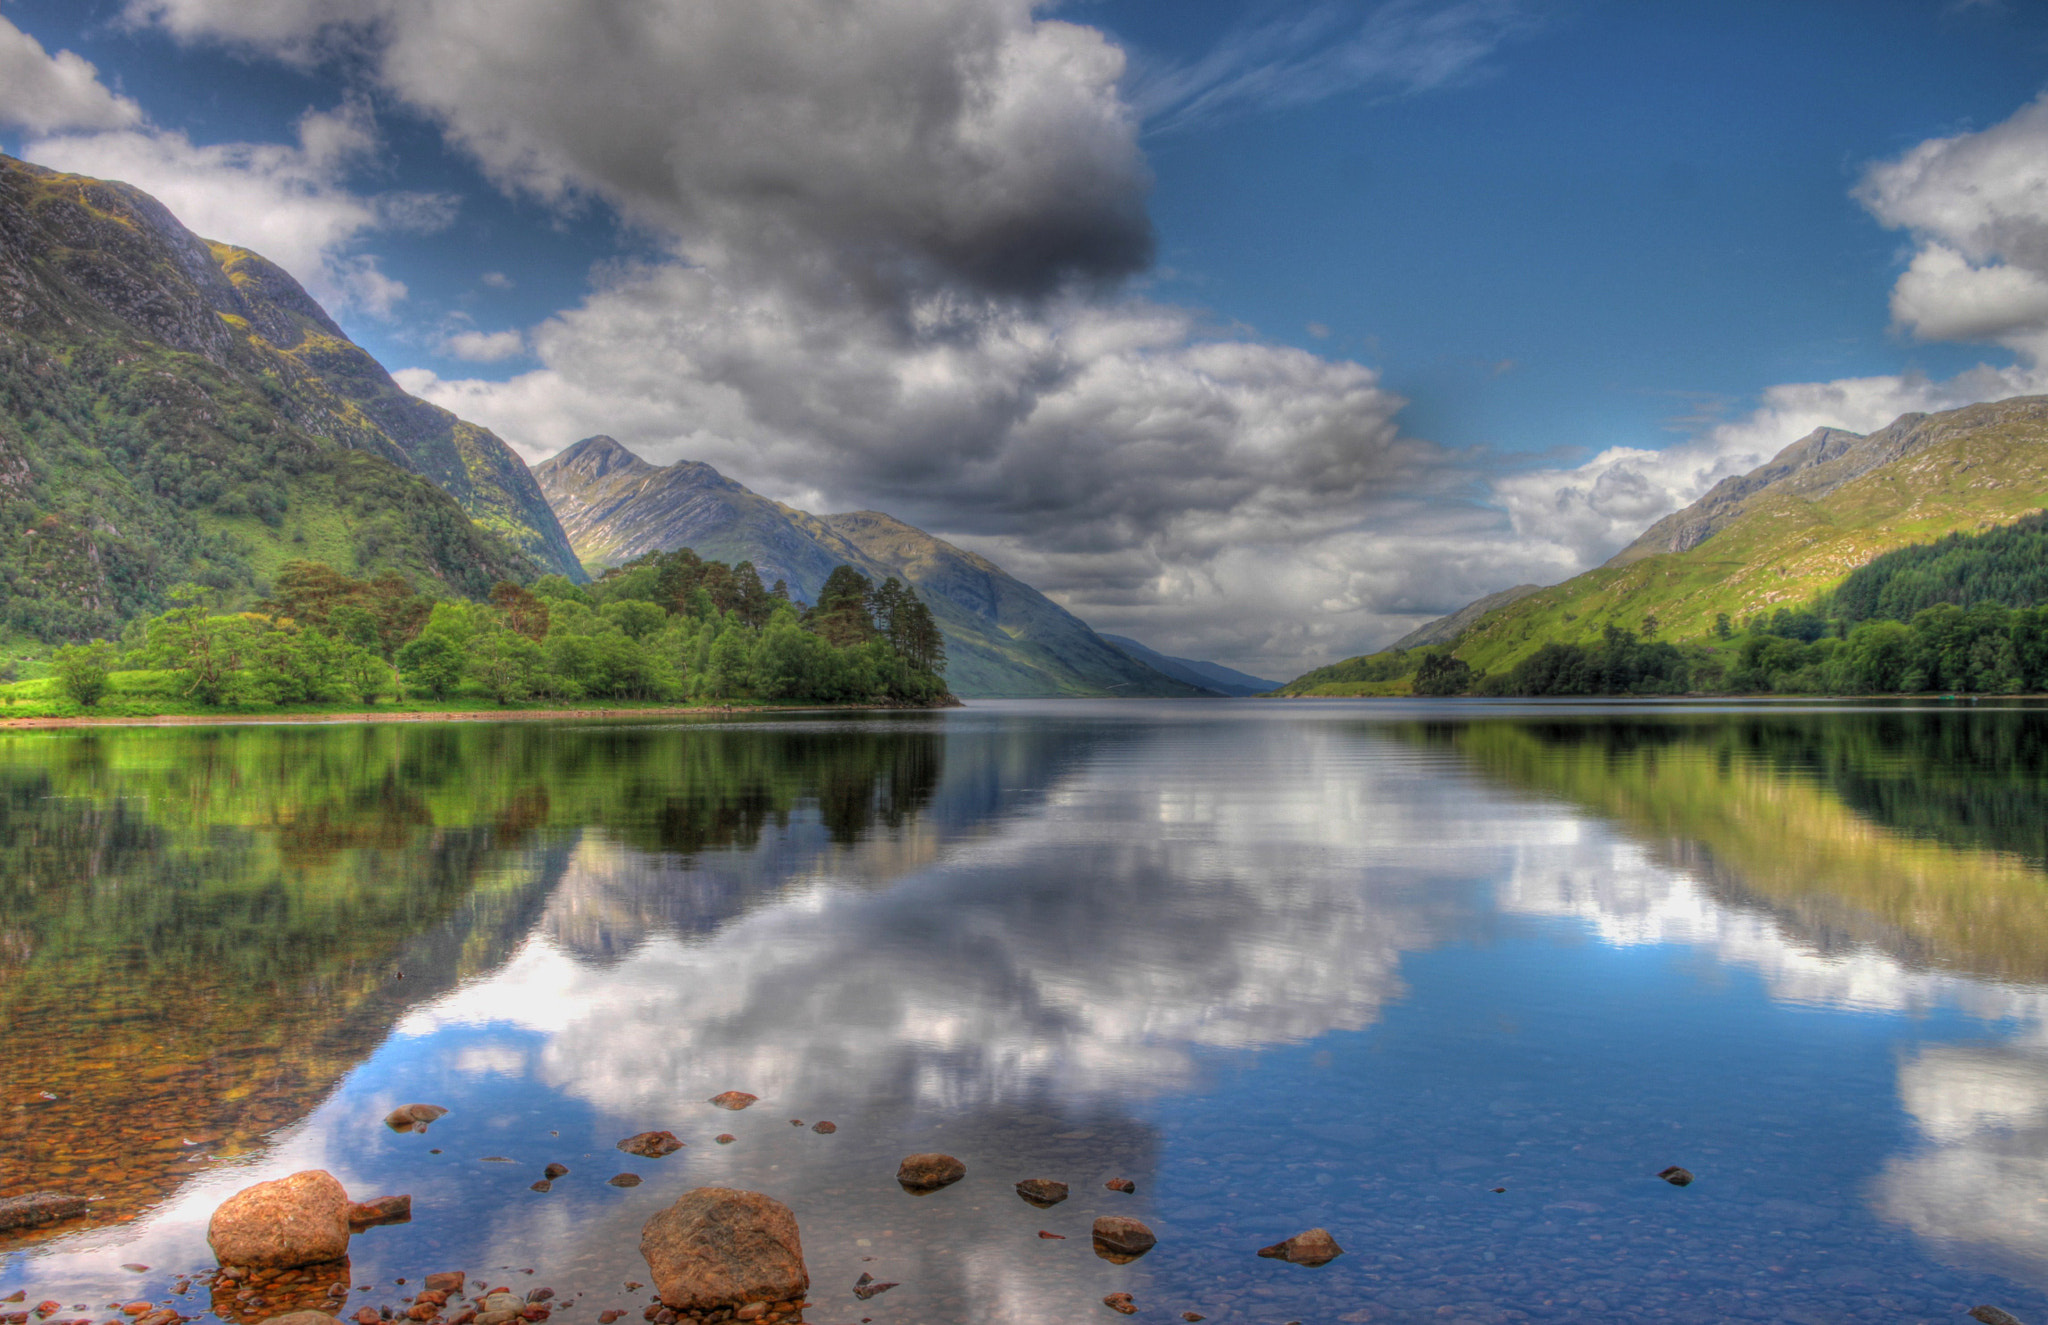 Photograph Loch Shiel by Hilda Murray on 500px